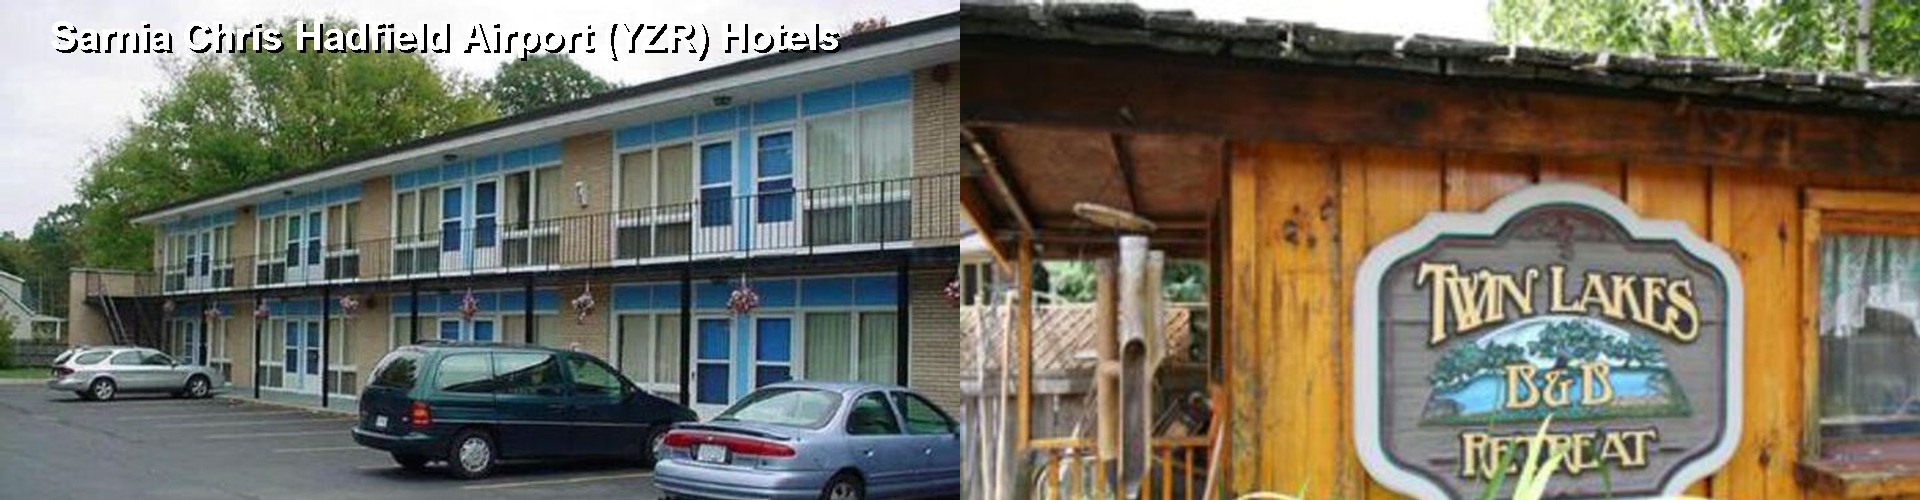 5 Best Hotels near Sarnia Chris Hadfield Airport (YZR)